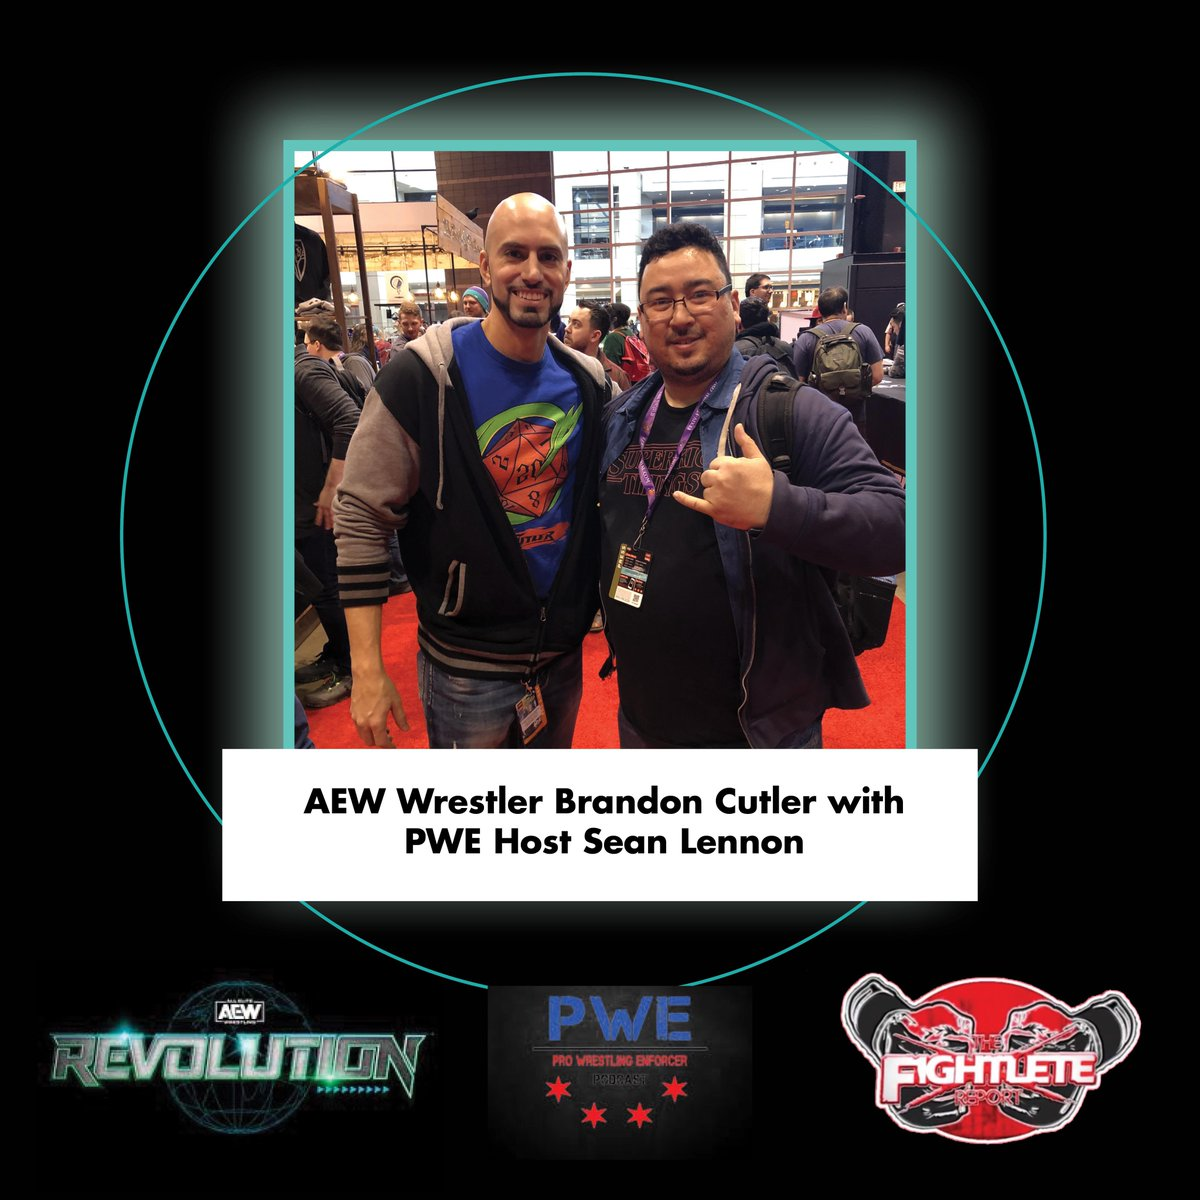 Check out our coverage of #AEWRevolution and the latest on @BranCutler and more at !  #BrandonCutler #AEW #prowrestling #ProWrestlingEnforcer #boxing #MMATwitter #Fightlete #MBJProductions